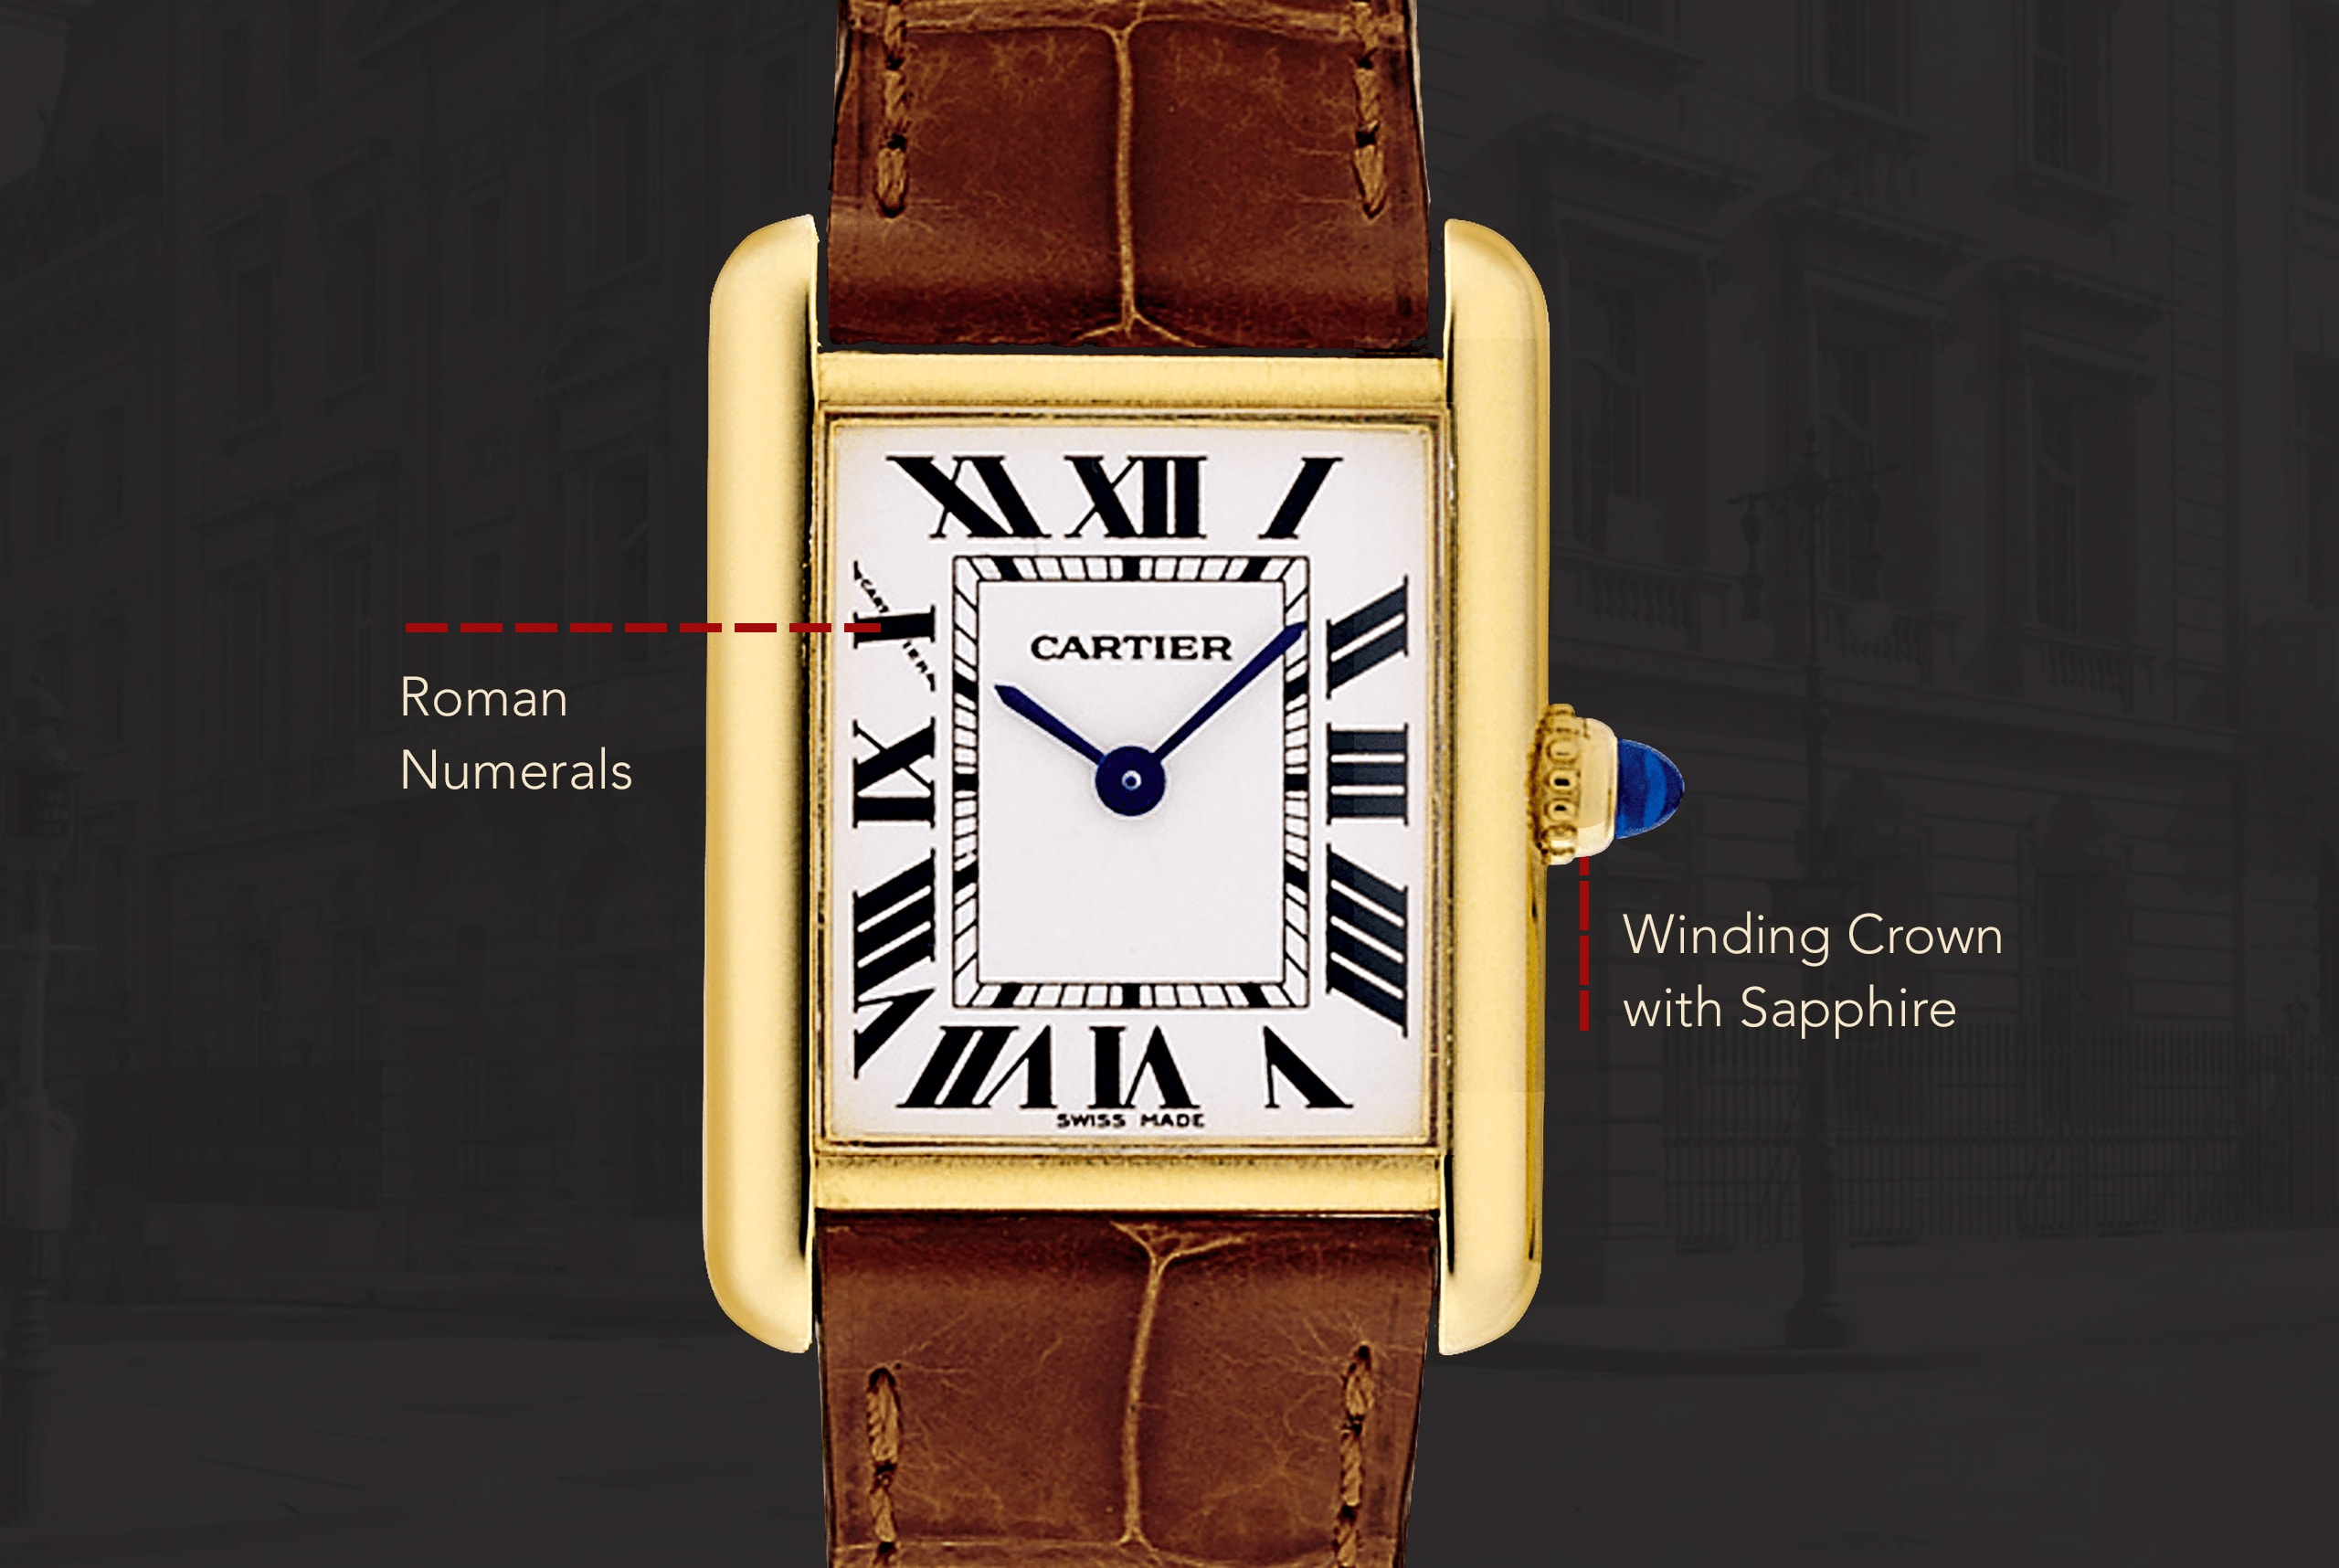 f09f77fcb After creating the first modern men's wrist watch in 1904 with the Santos  de Cartier, Louis Cartier saw potential in the wristwatch to become an  essential ...